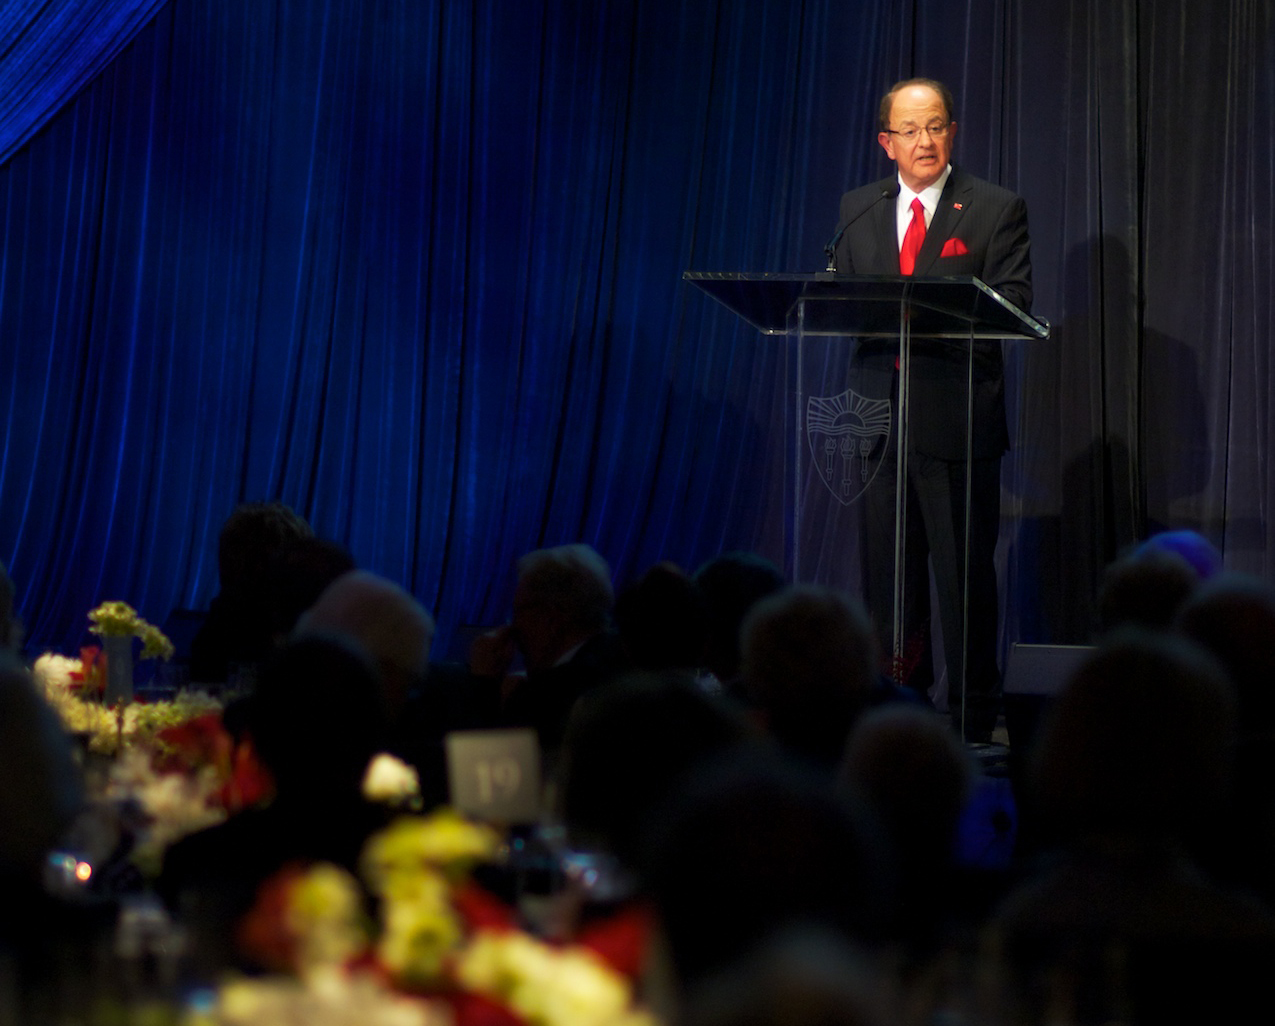 USC President C. L. Max Nikias reflected on Judge Widney's role as the chief architect of the university during his speech at the Widney Society gala on Nov. 1. (Photo/Dietmar Quistorf)